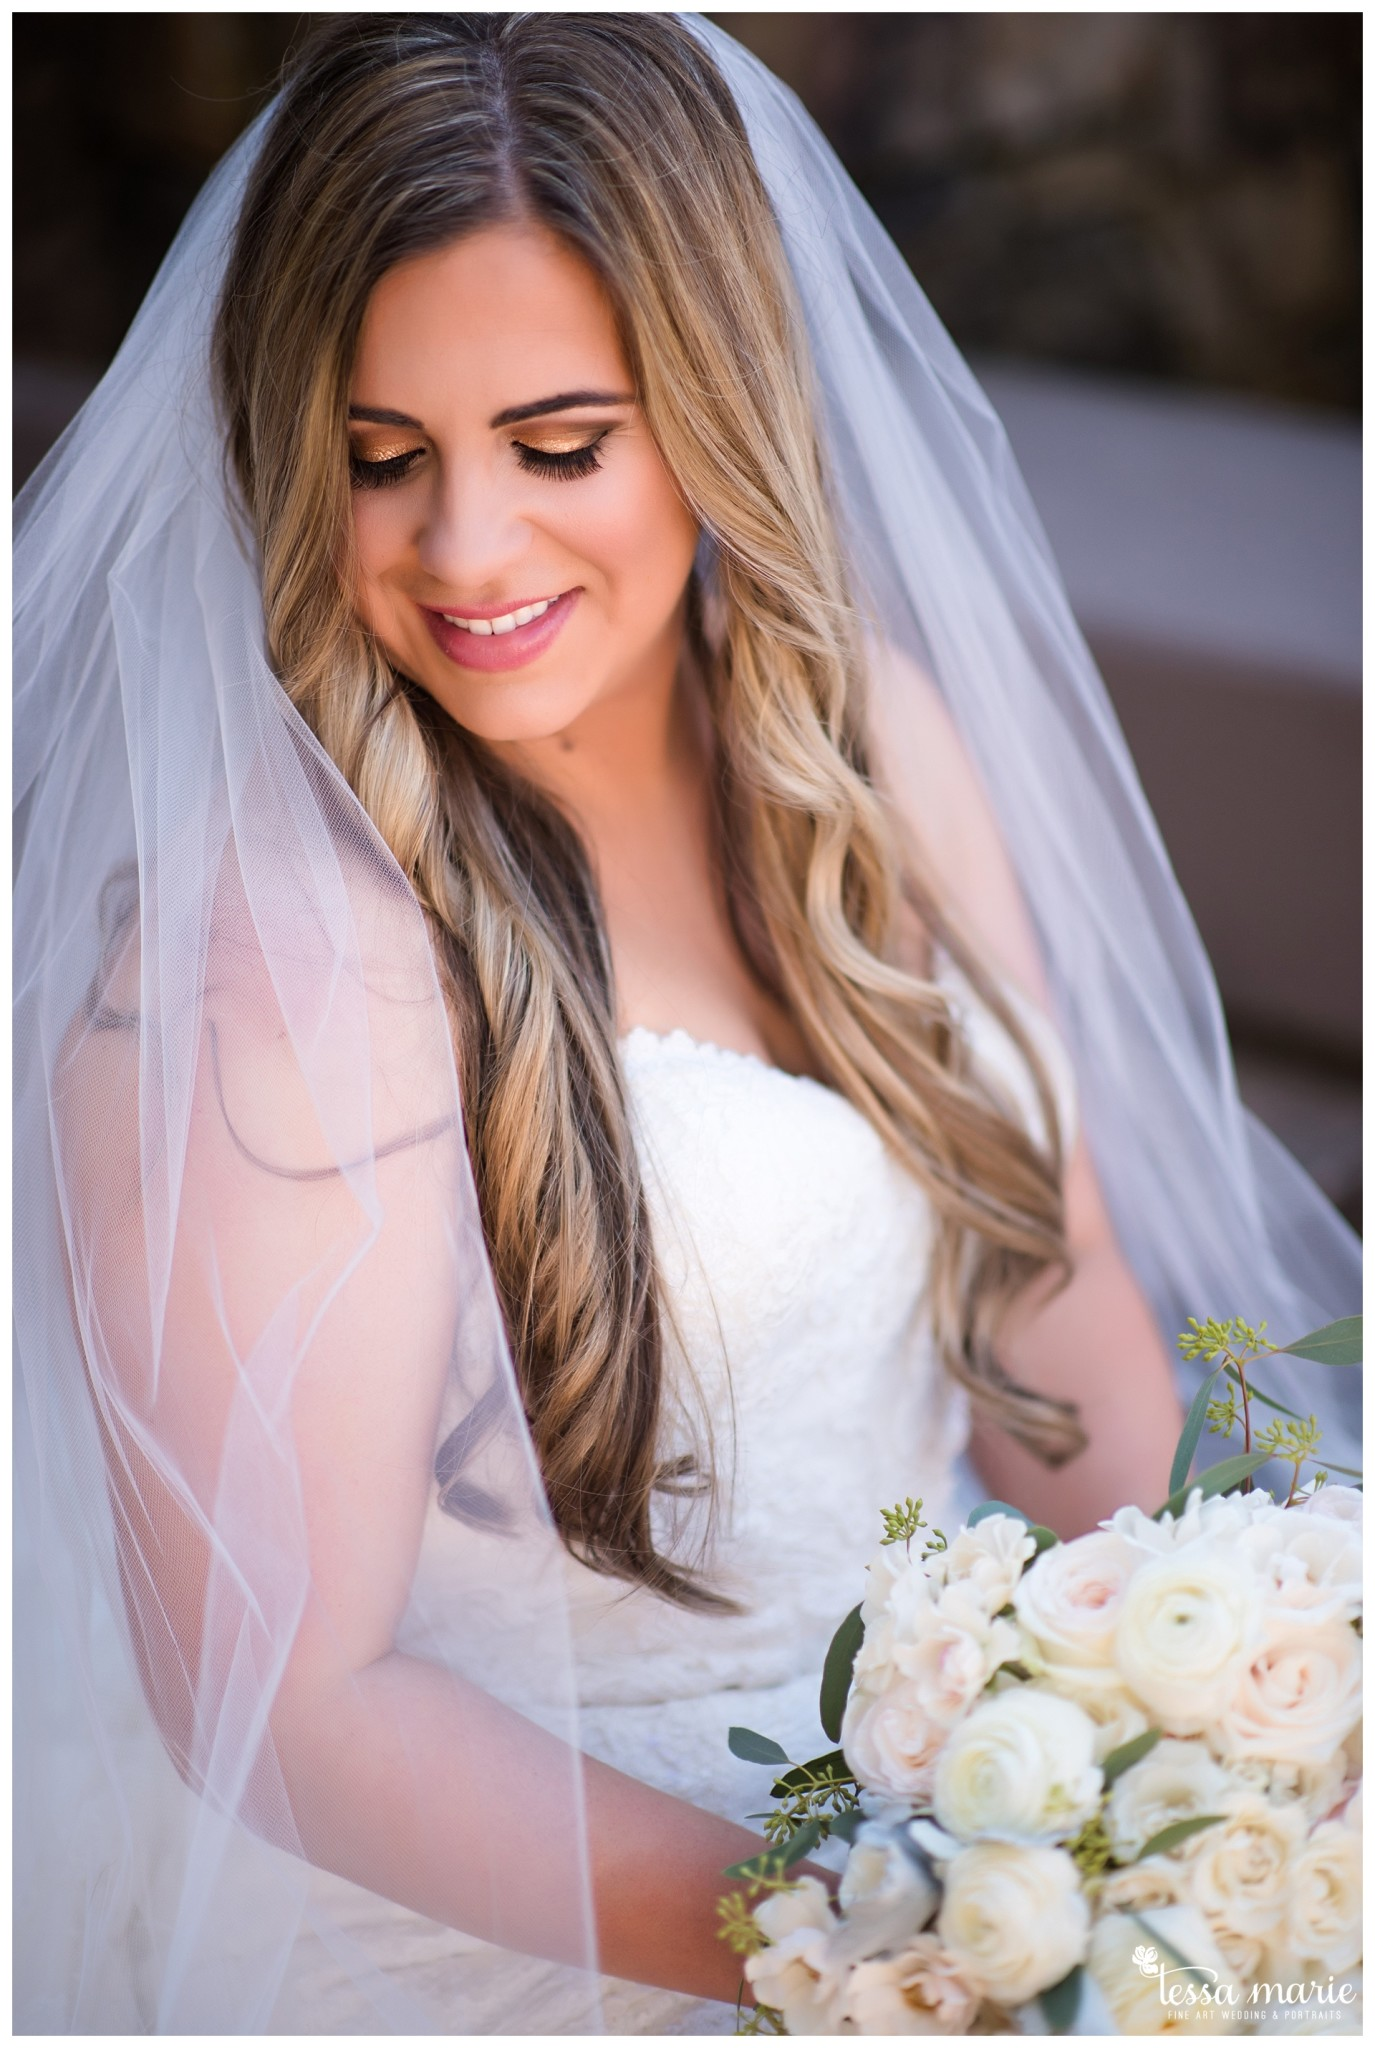 tessa_marie_weddings_legacy_story_focused_wedding_pictures_atlanta_wedding_photographer_0083